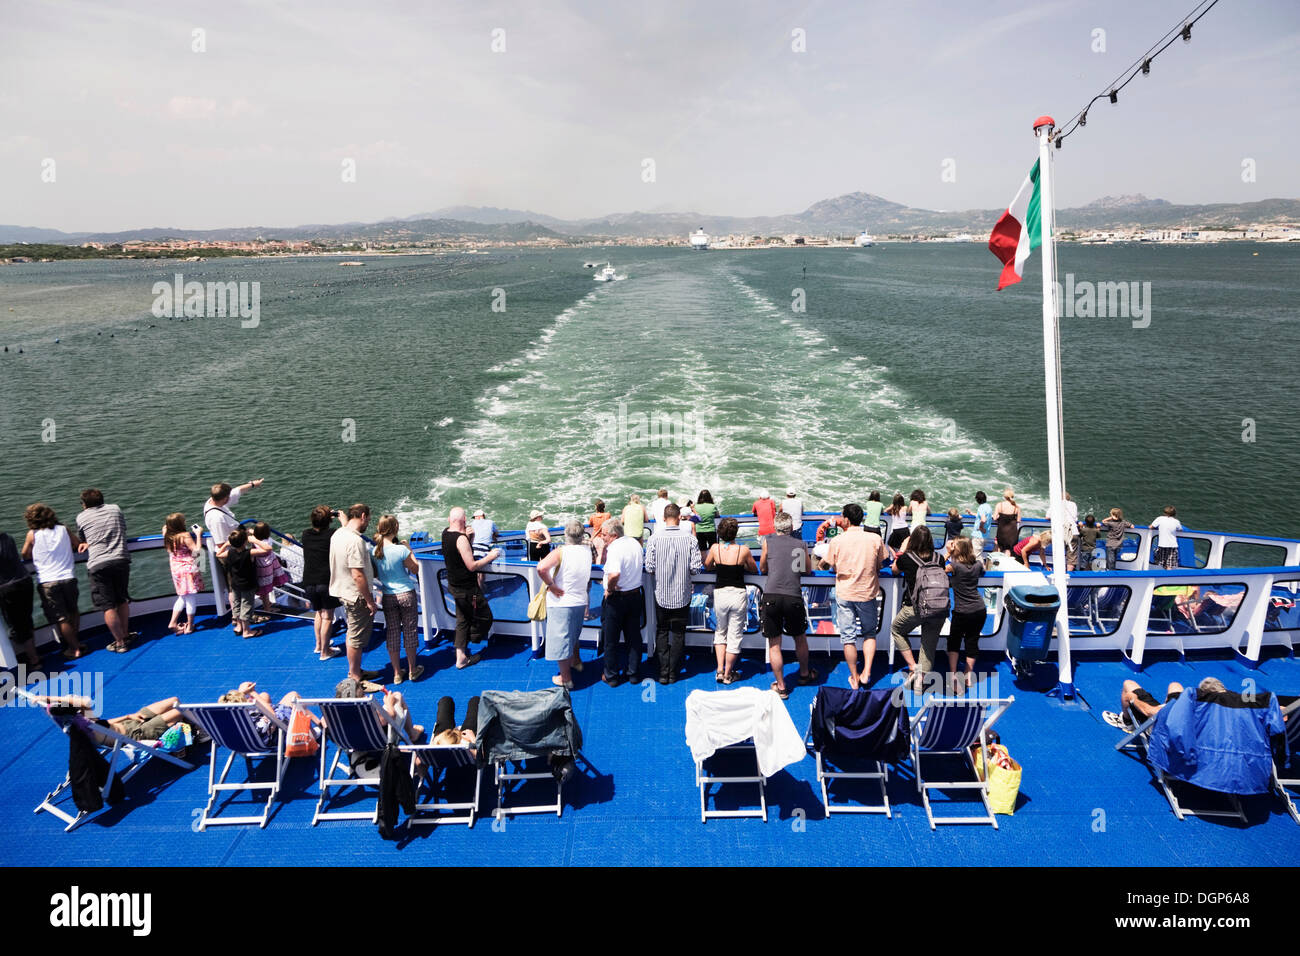 Travellers on the car ferry from Olbia to Livorno, Gallura Province, Sardinia, Italy, Europe - Stock Image